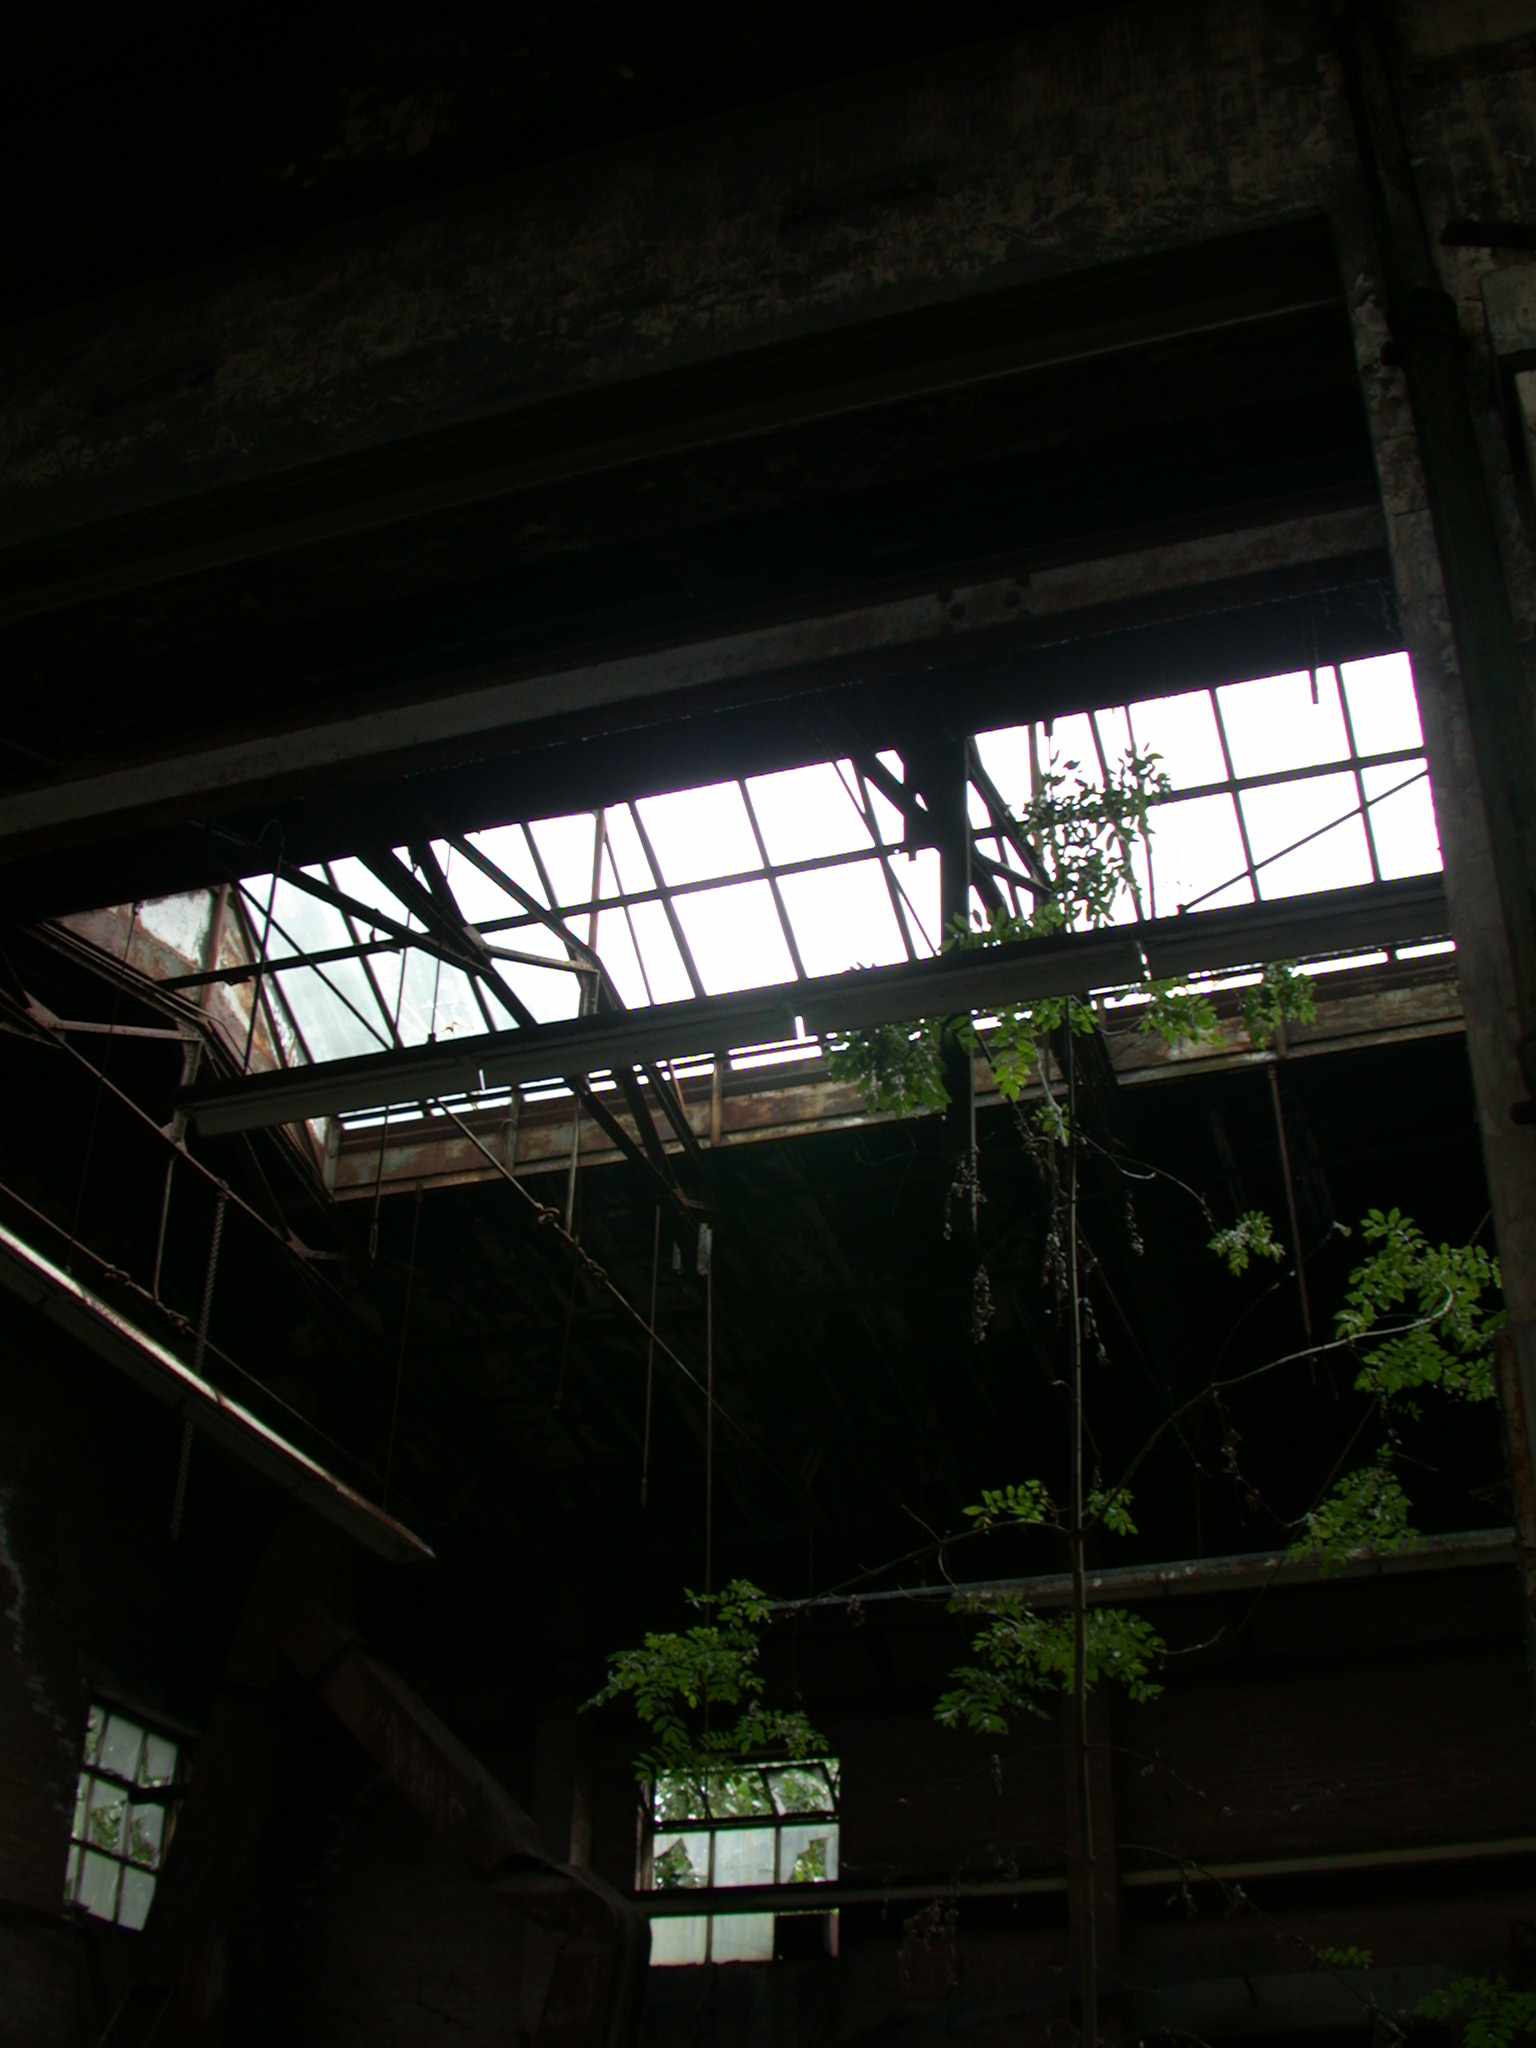 architecture interiors abandoned factory tree growing inside the building hall